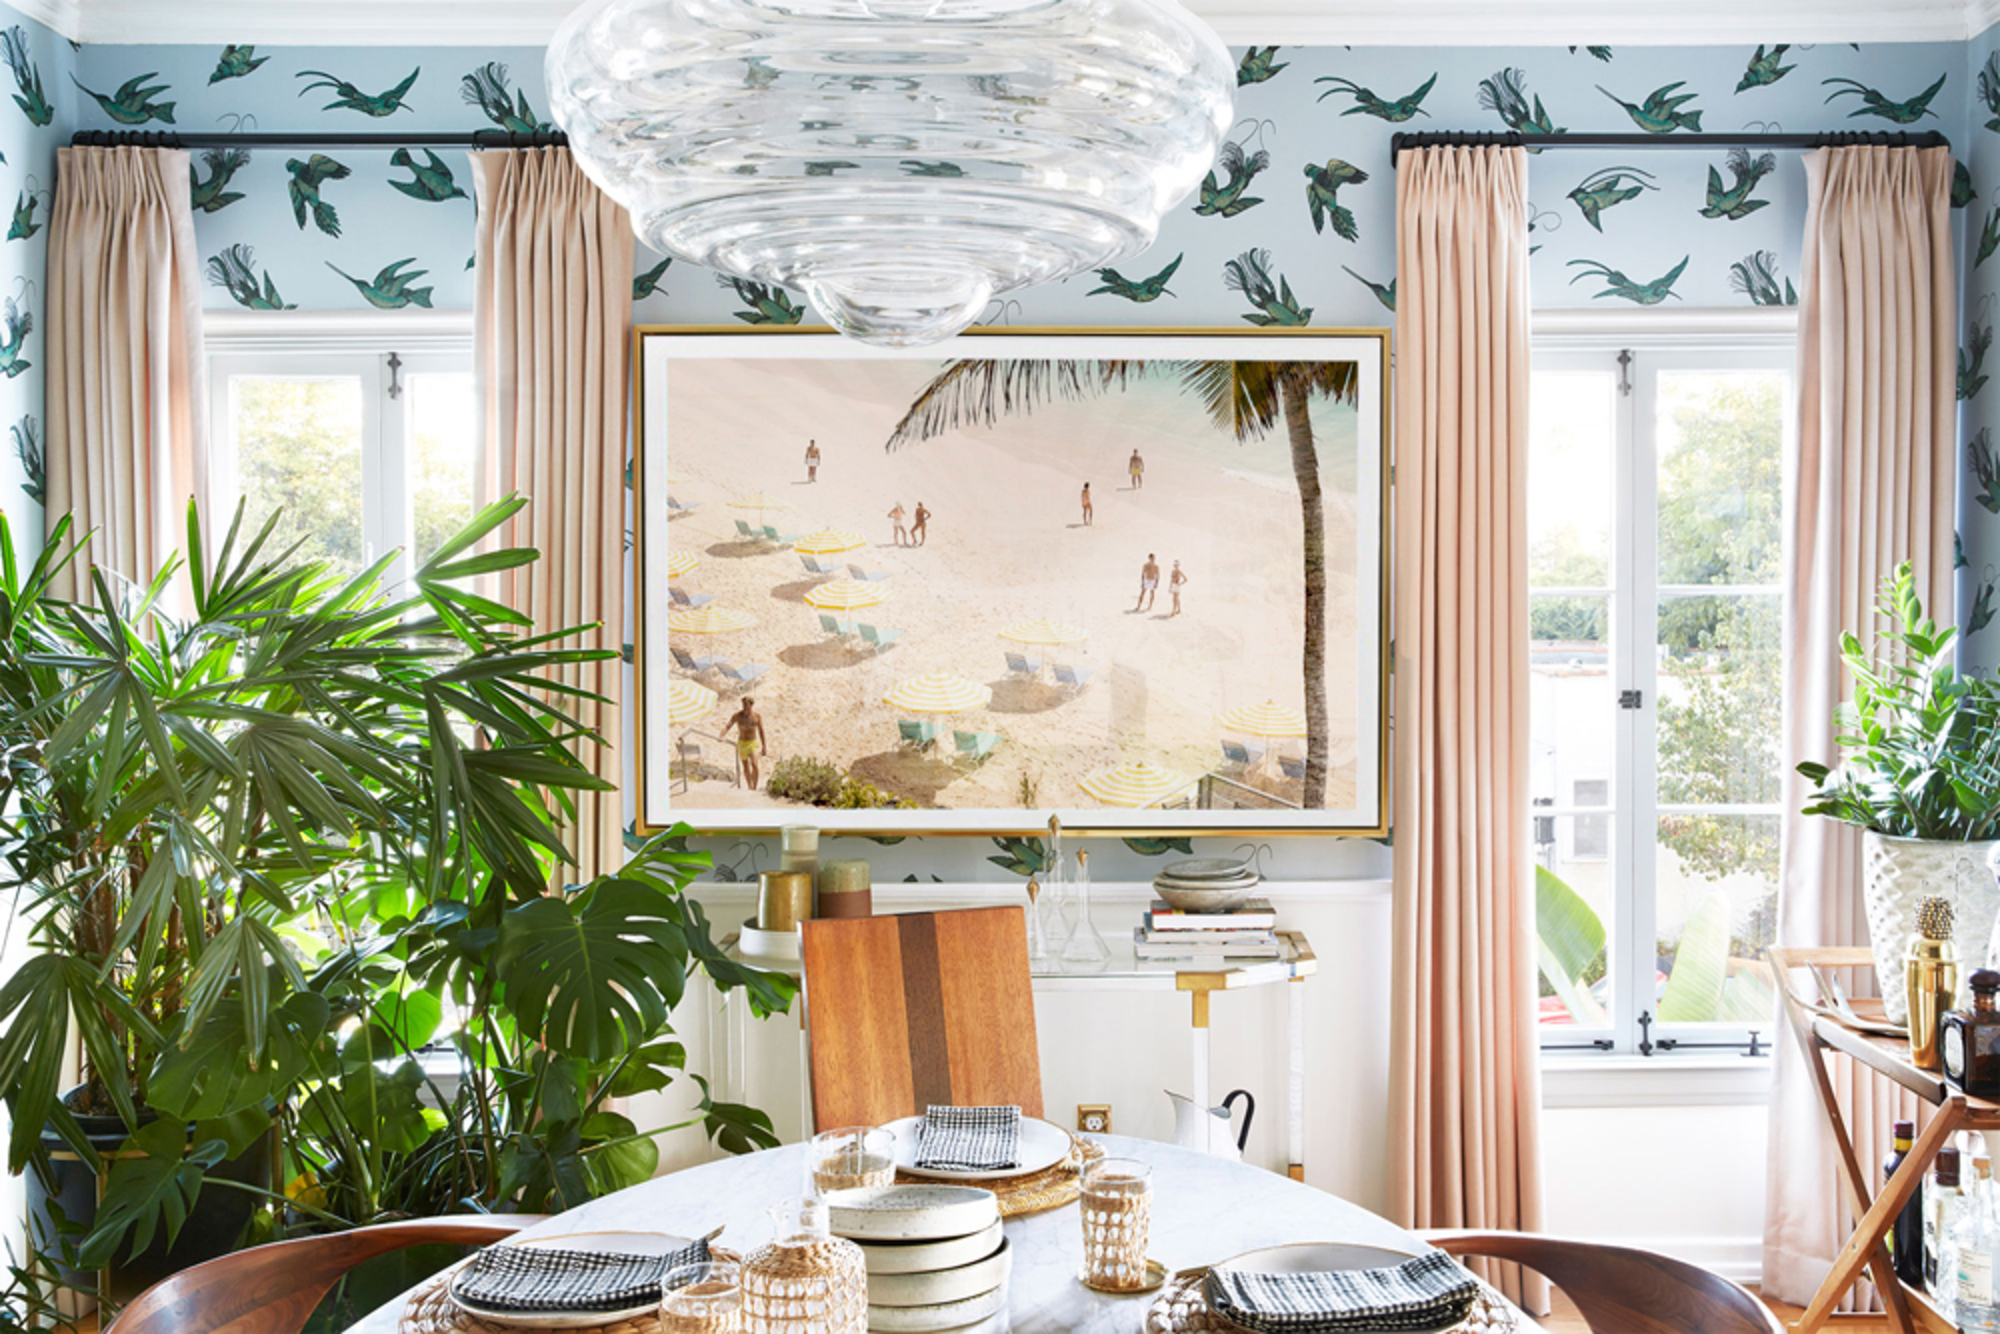 How to Make a Formal Dining Room Fun, According to an ...